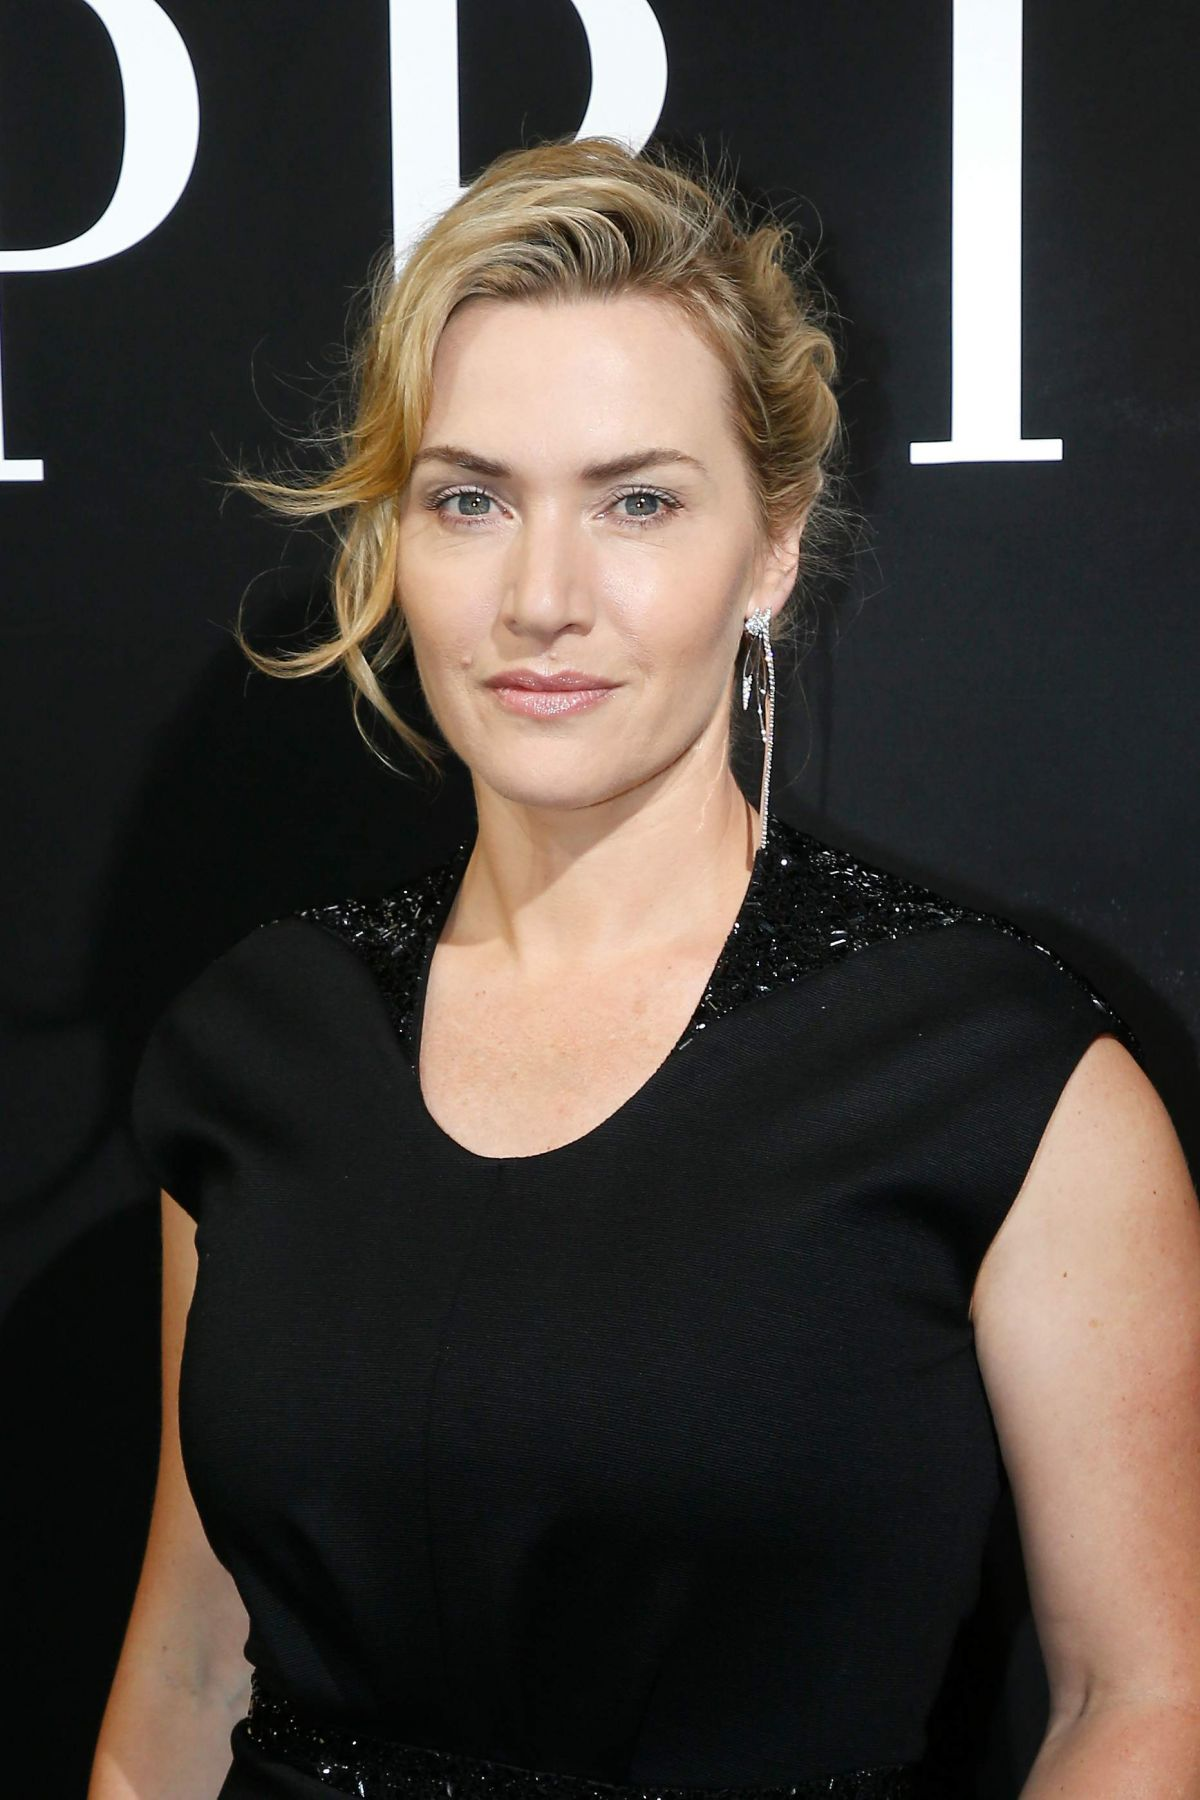 Kate Winslet At the Giorgio Armani Prive Haute Couture ... Kate Winslet